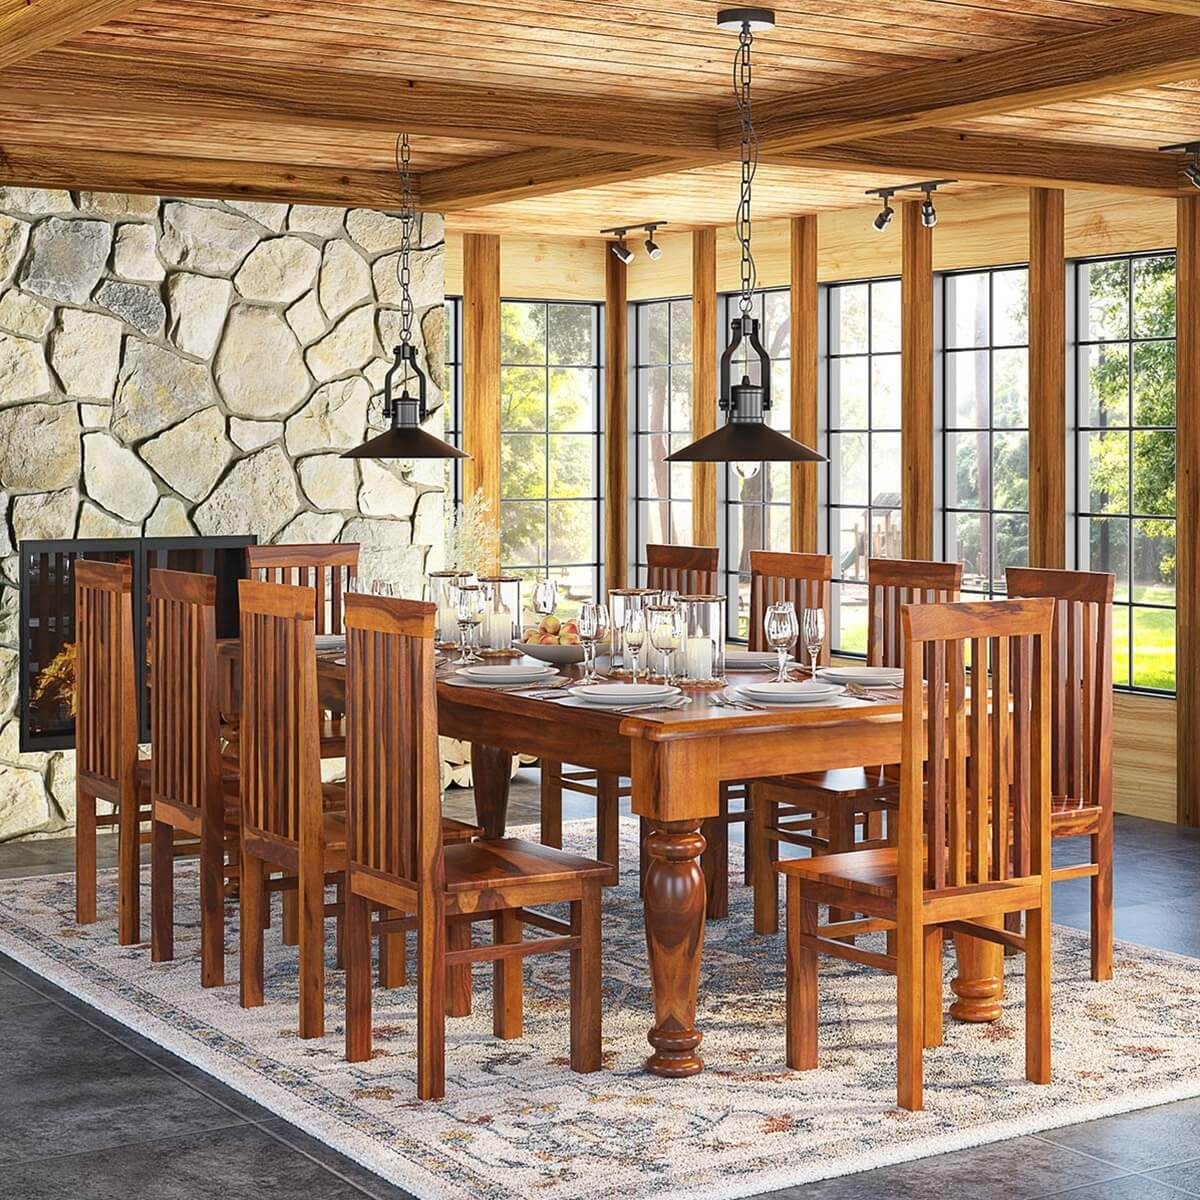 Large Rustic Dining Room Table large solid wood rectangular rustic dining table & chair set furniture